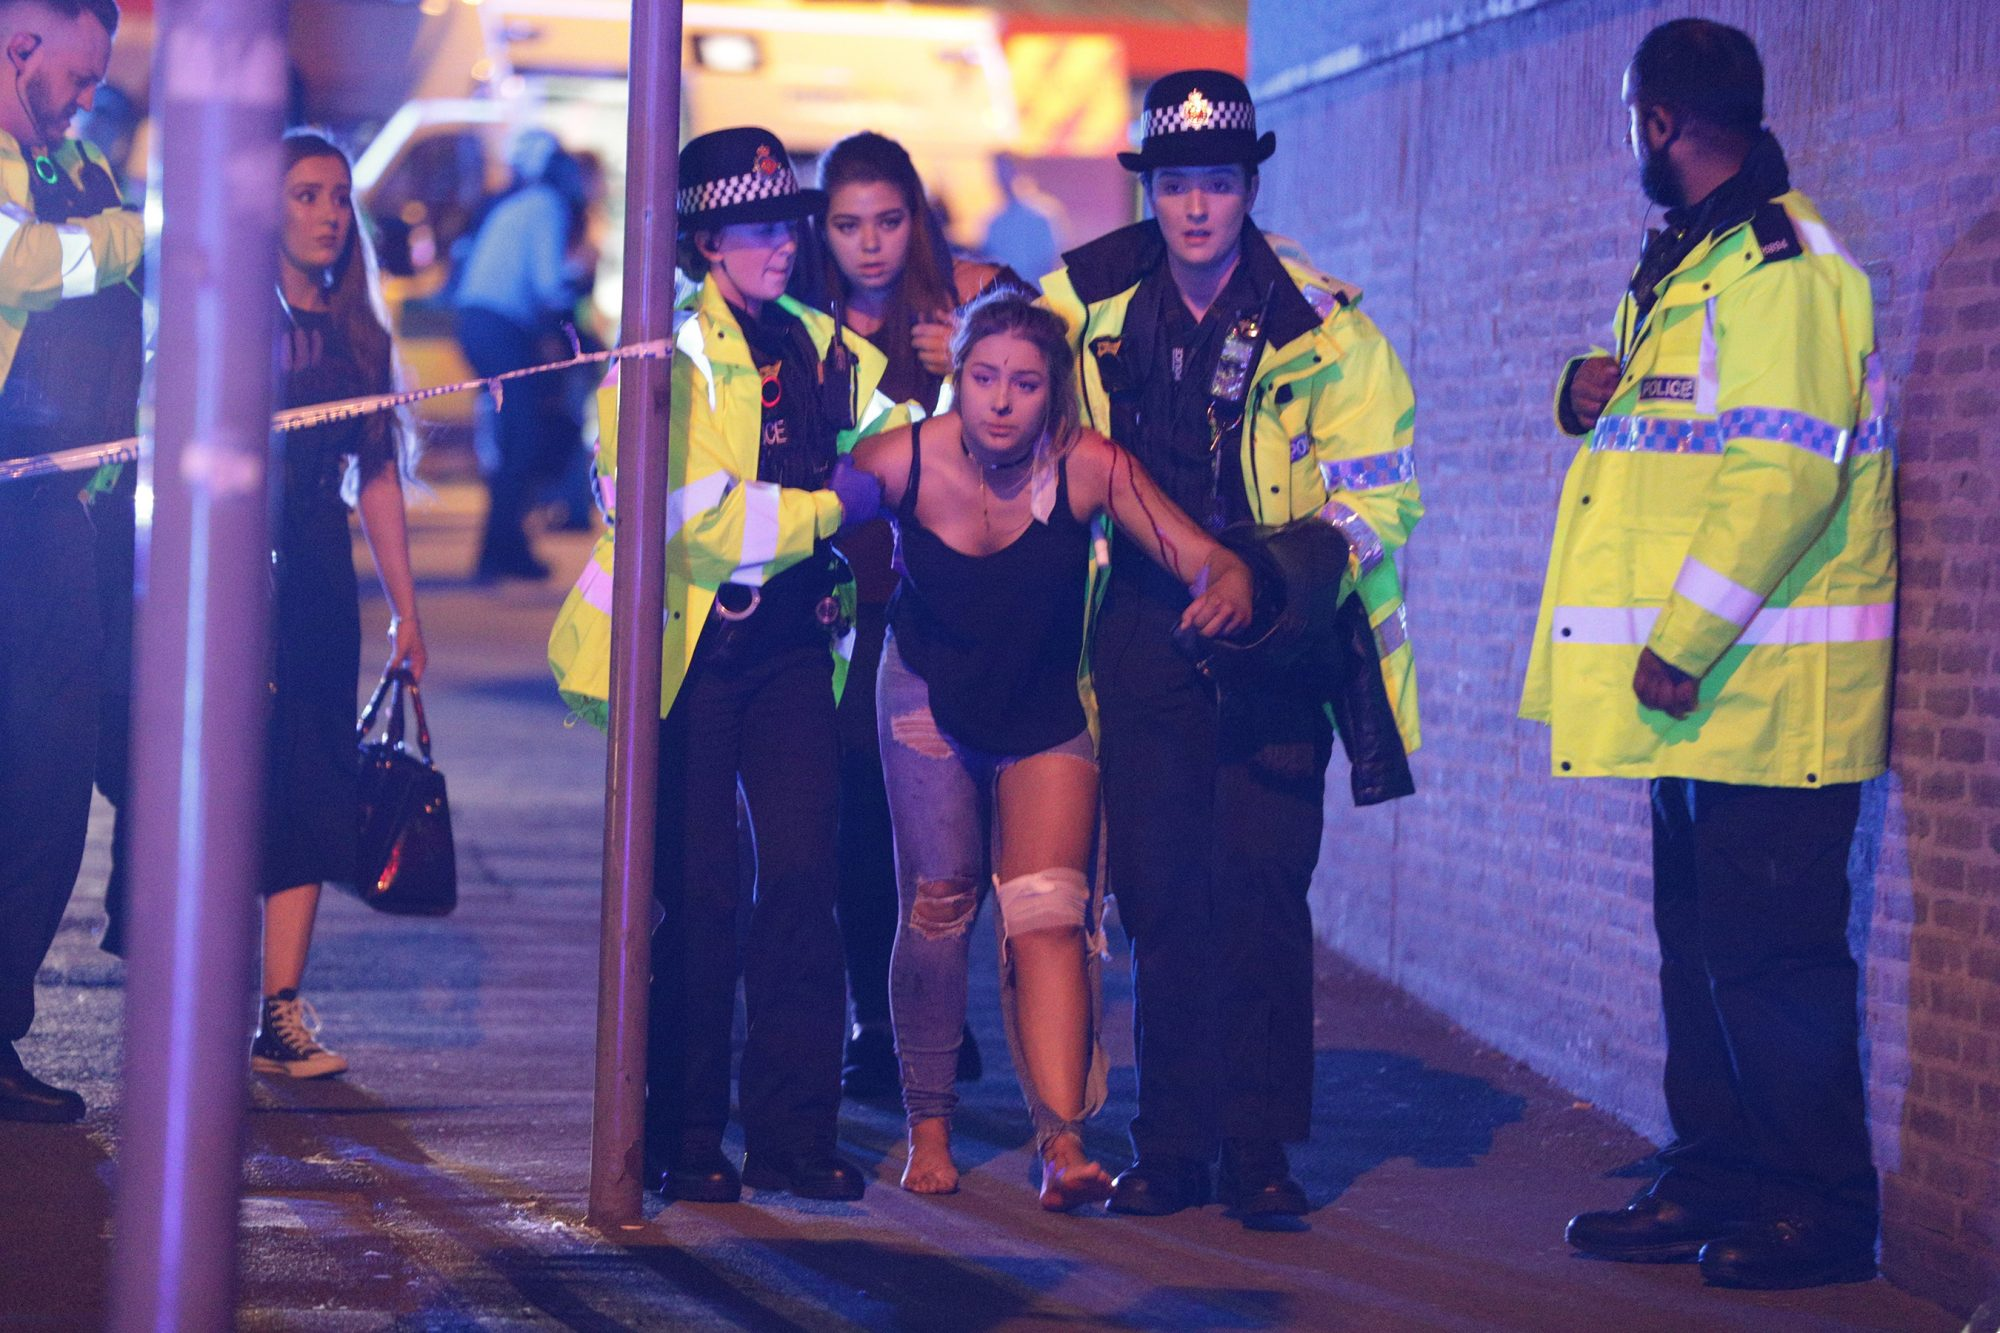 Explosion at Manchester Arena, UK - 22 May 2017